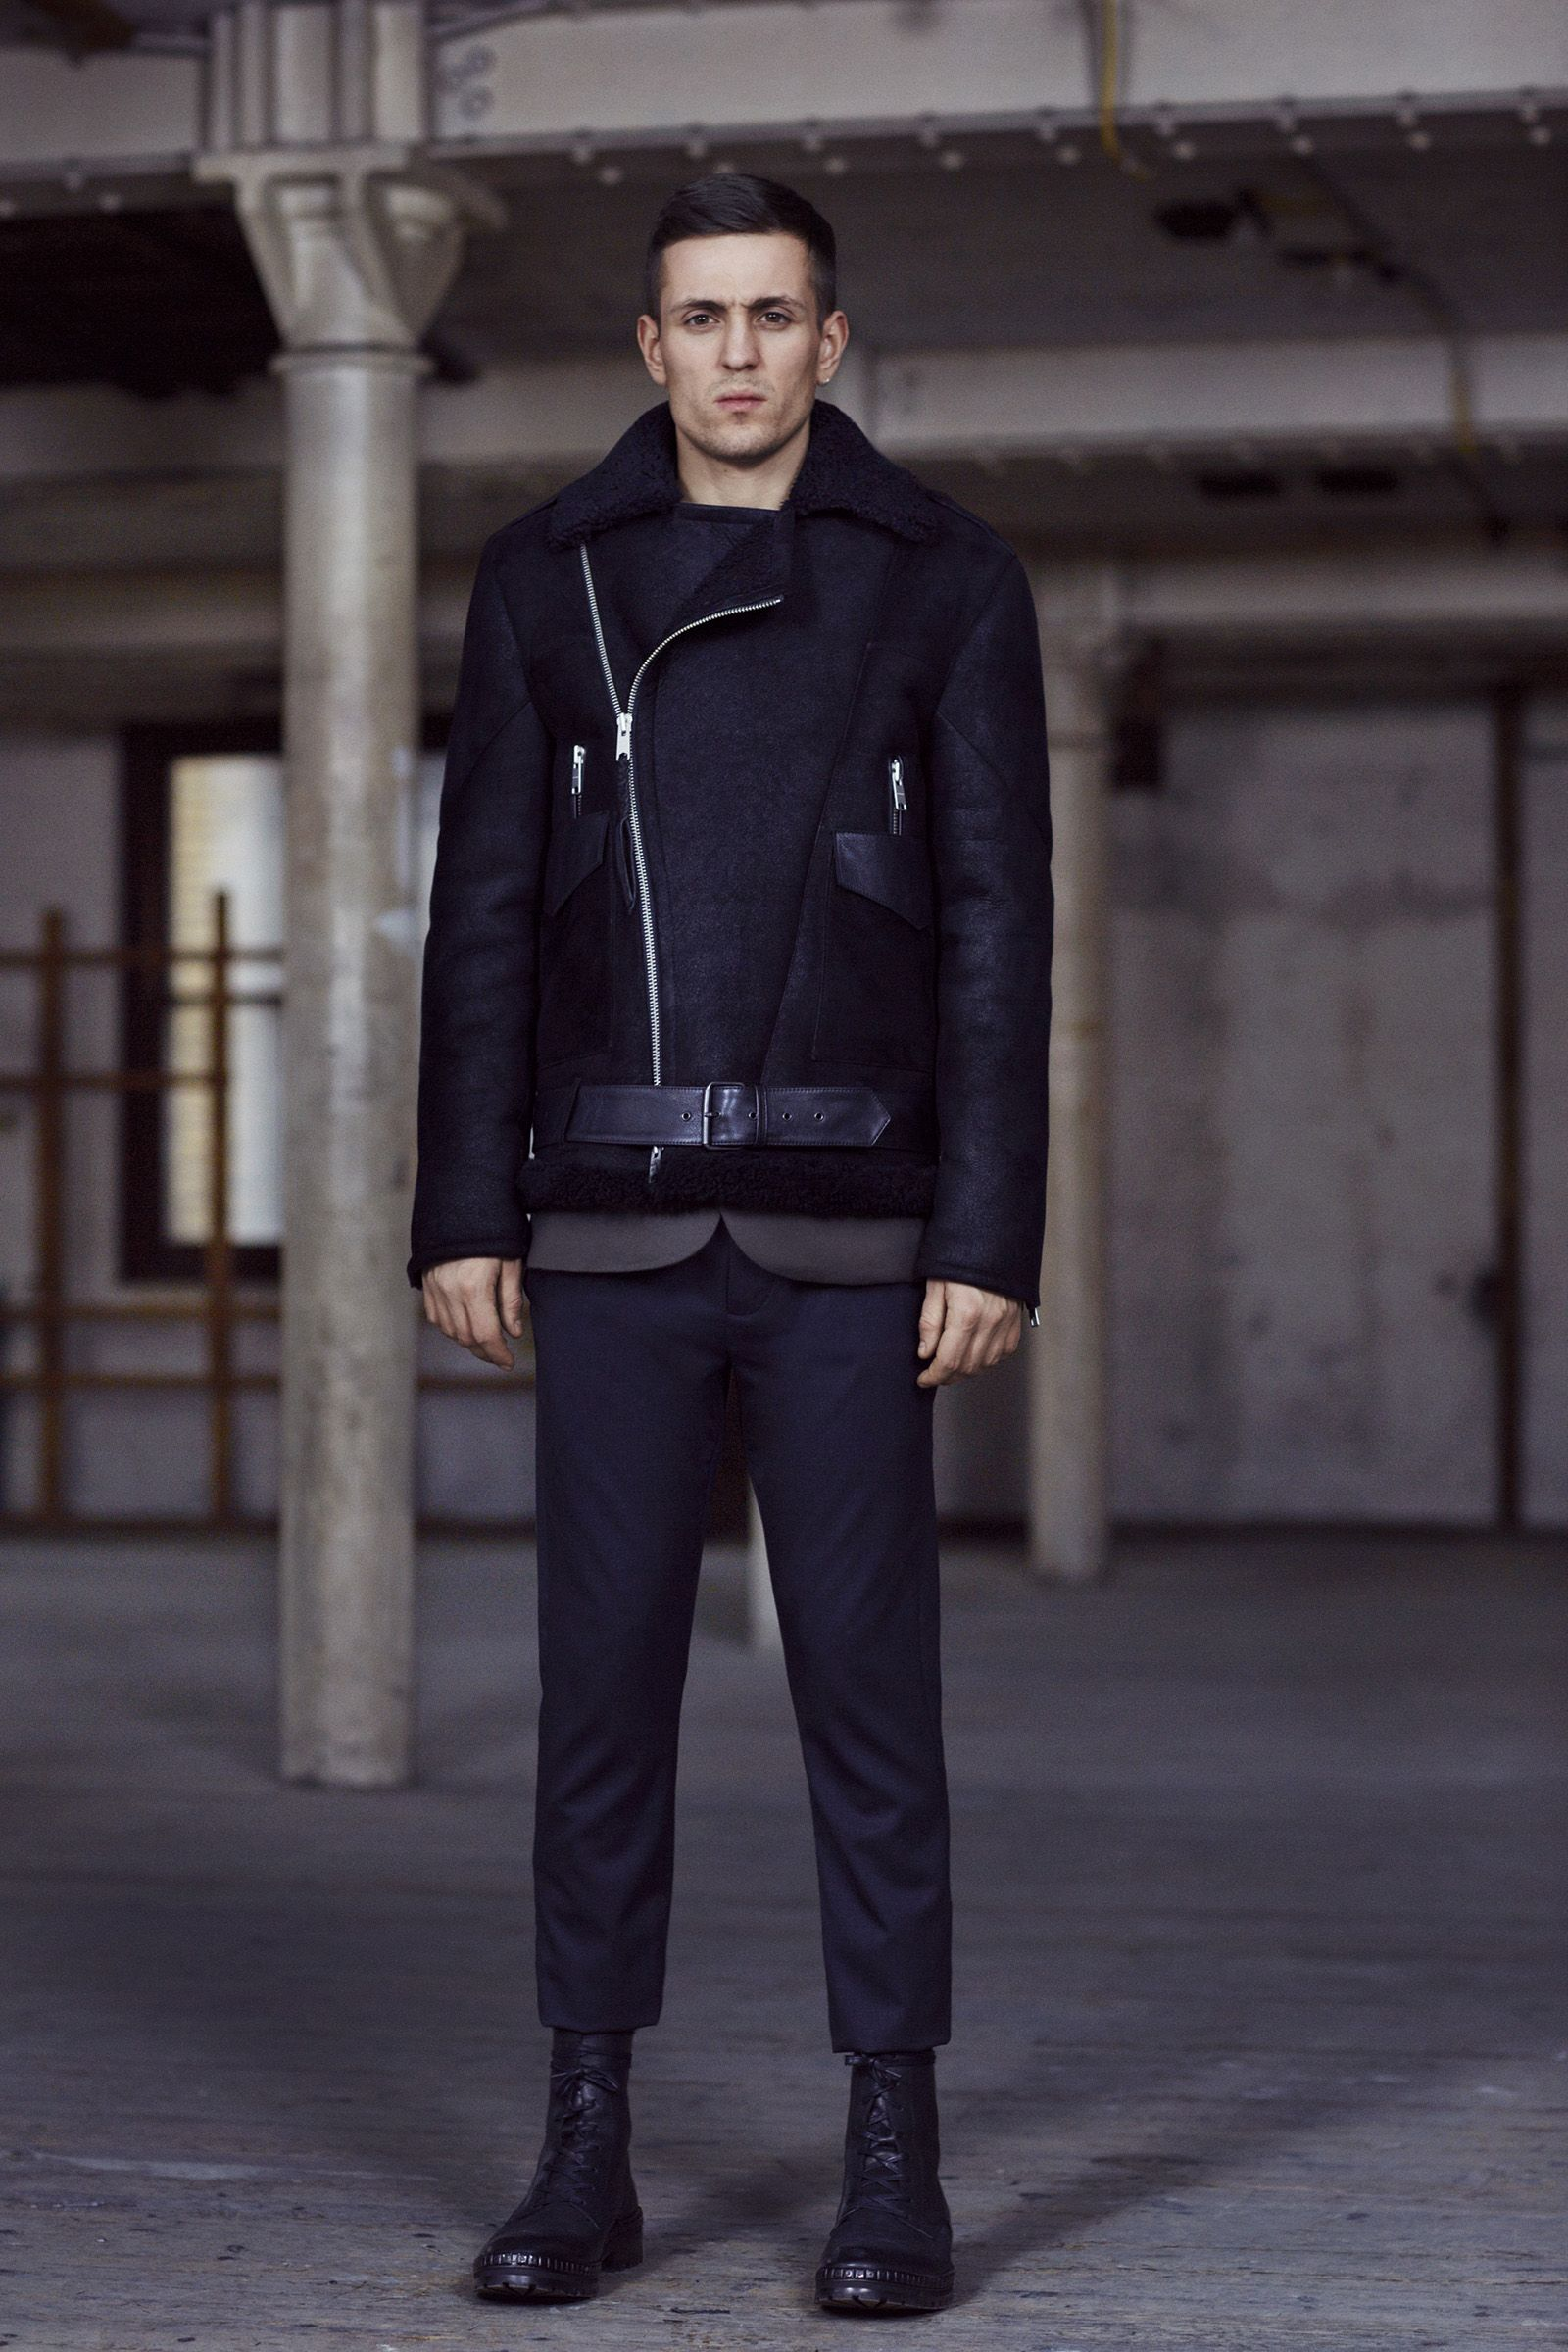 THE AUTUMN COLLECTION. The Takoma Leather Jacket, Shale